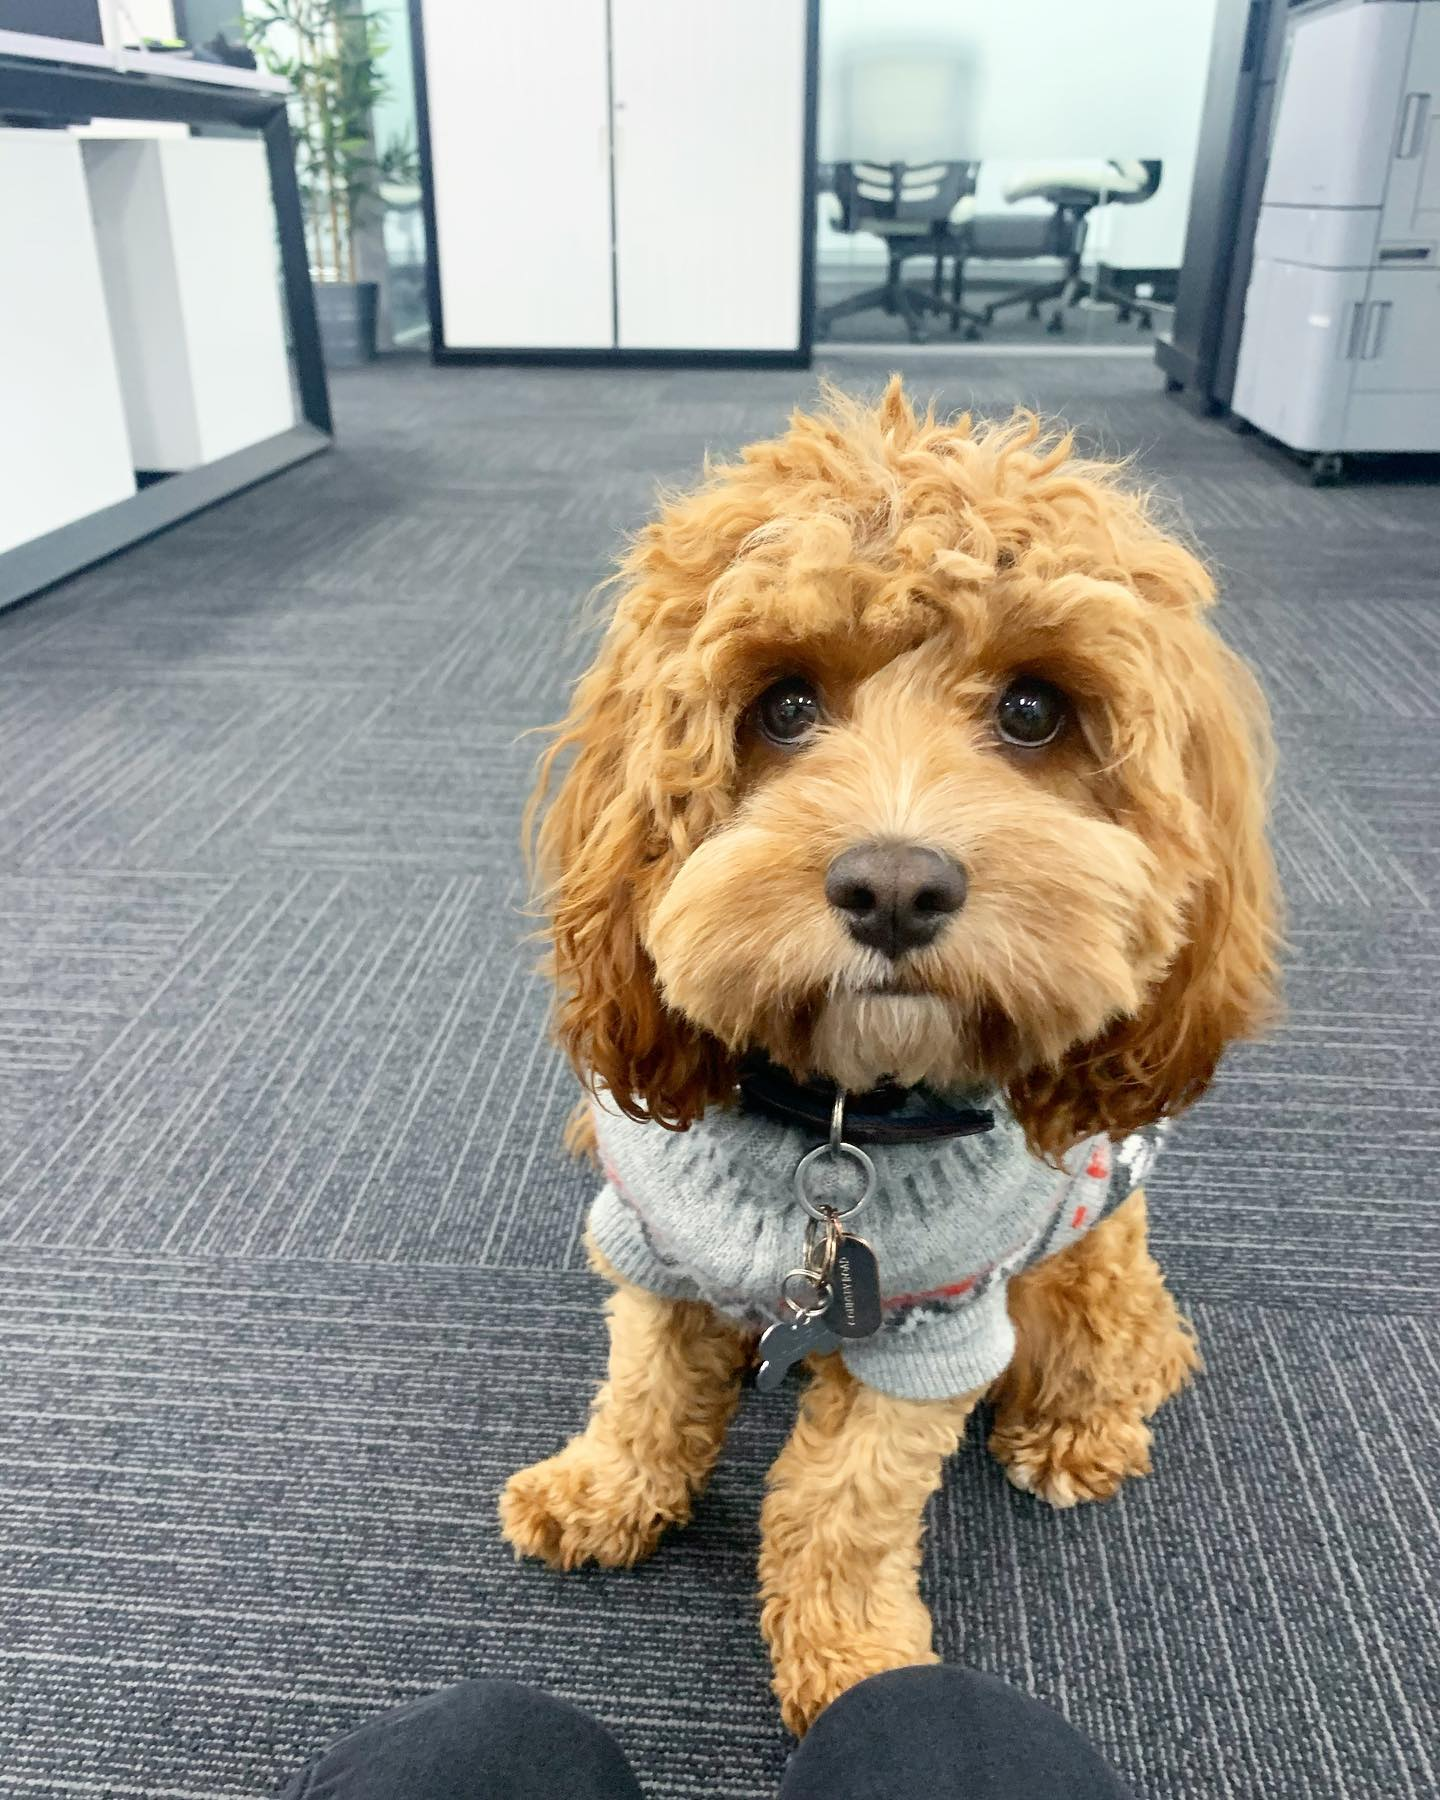 Alfie is looking for an Office Administrator to come and join the WOW Recruitment  team!!! If you have anyone in your network that might be interested in helping Alfie keep our office in order and work on key projects alongside the directors, please reach out and we'll be in touch ️ Thank you!!!  #Hiring #WOW #RecruitmentHappy #WorkHappy #DoWhatYouLove